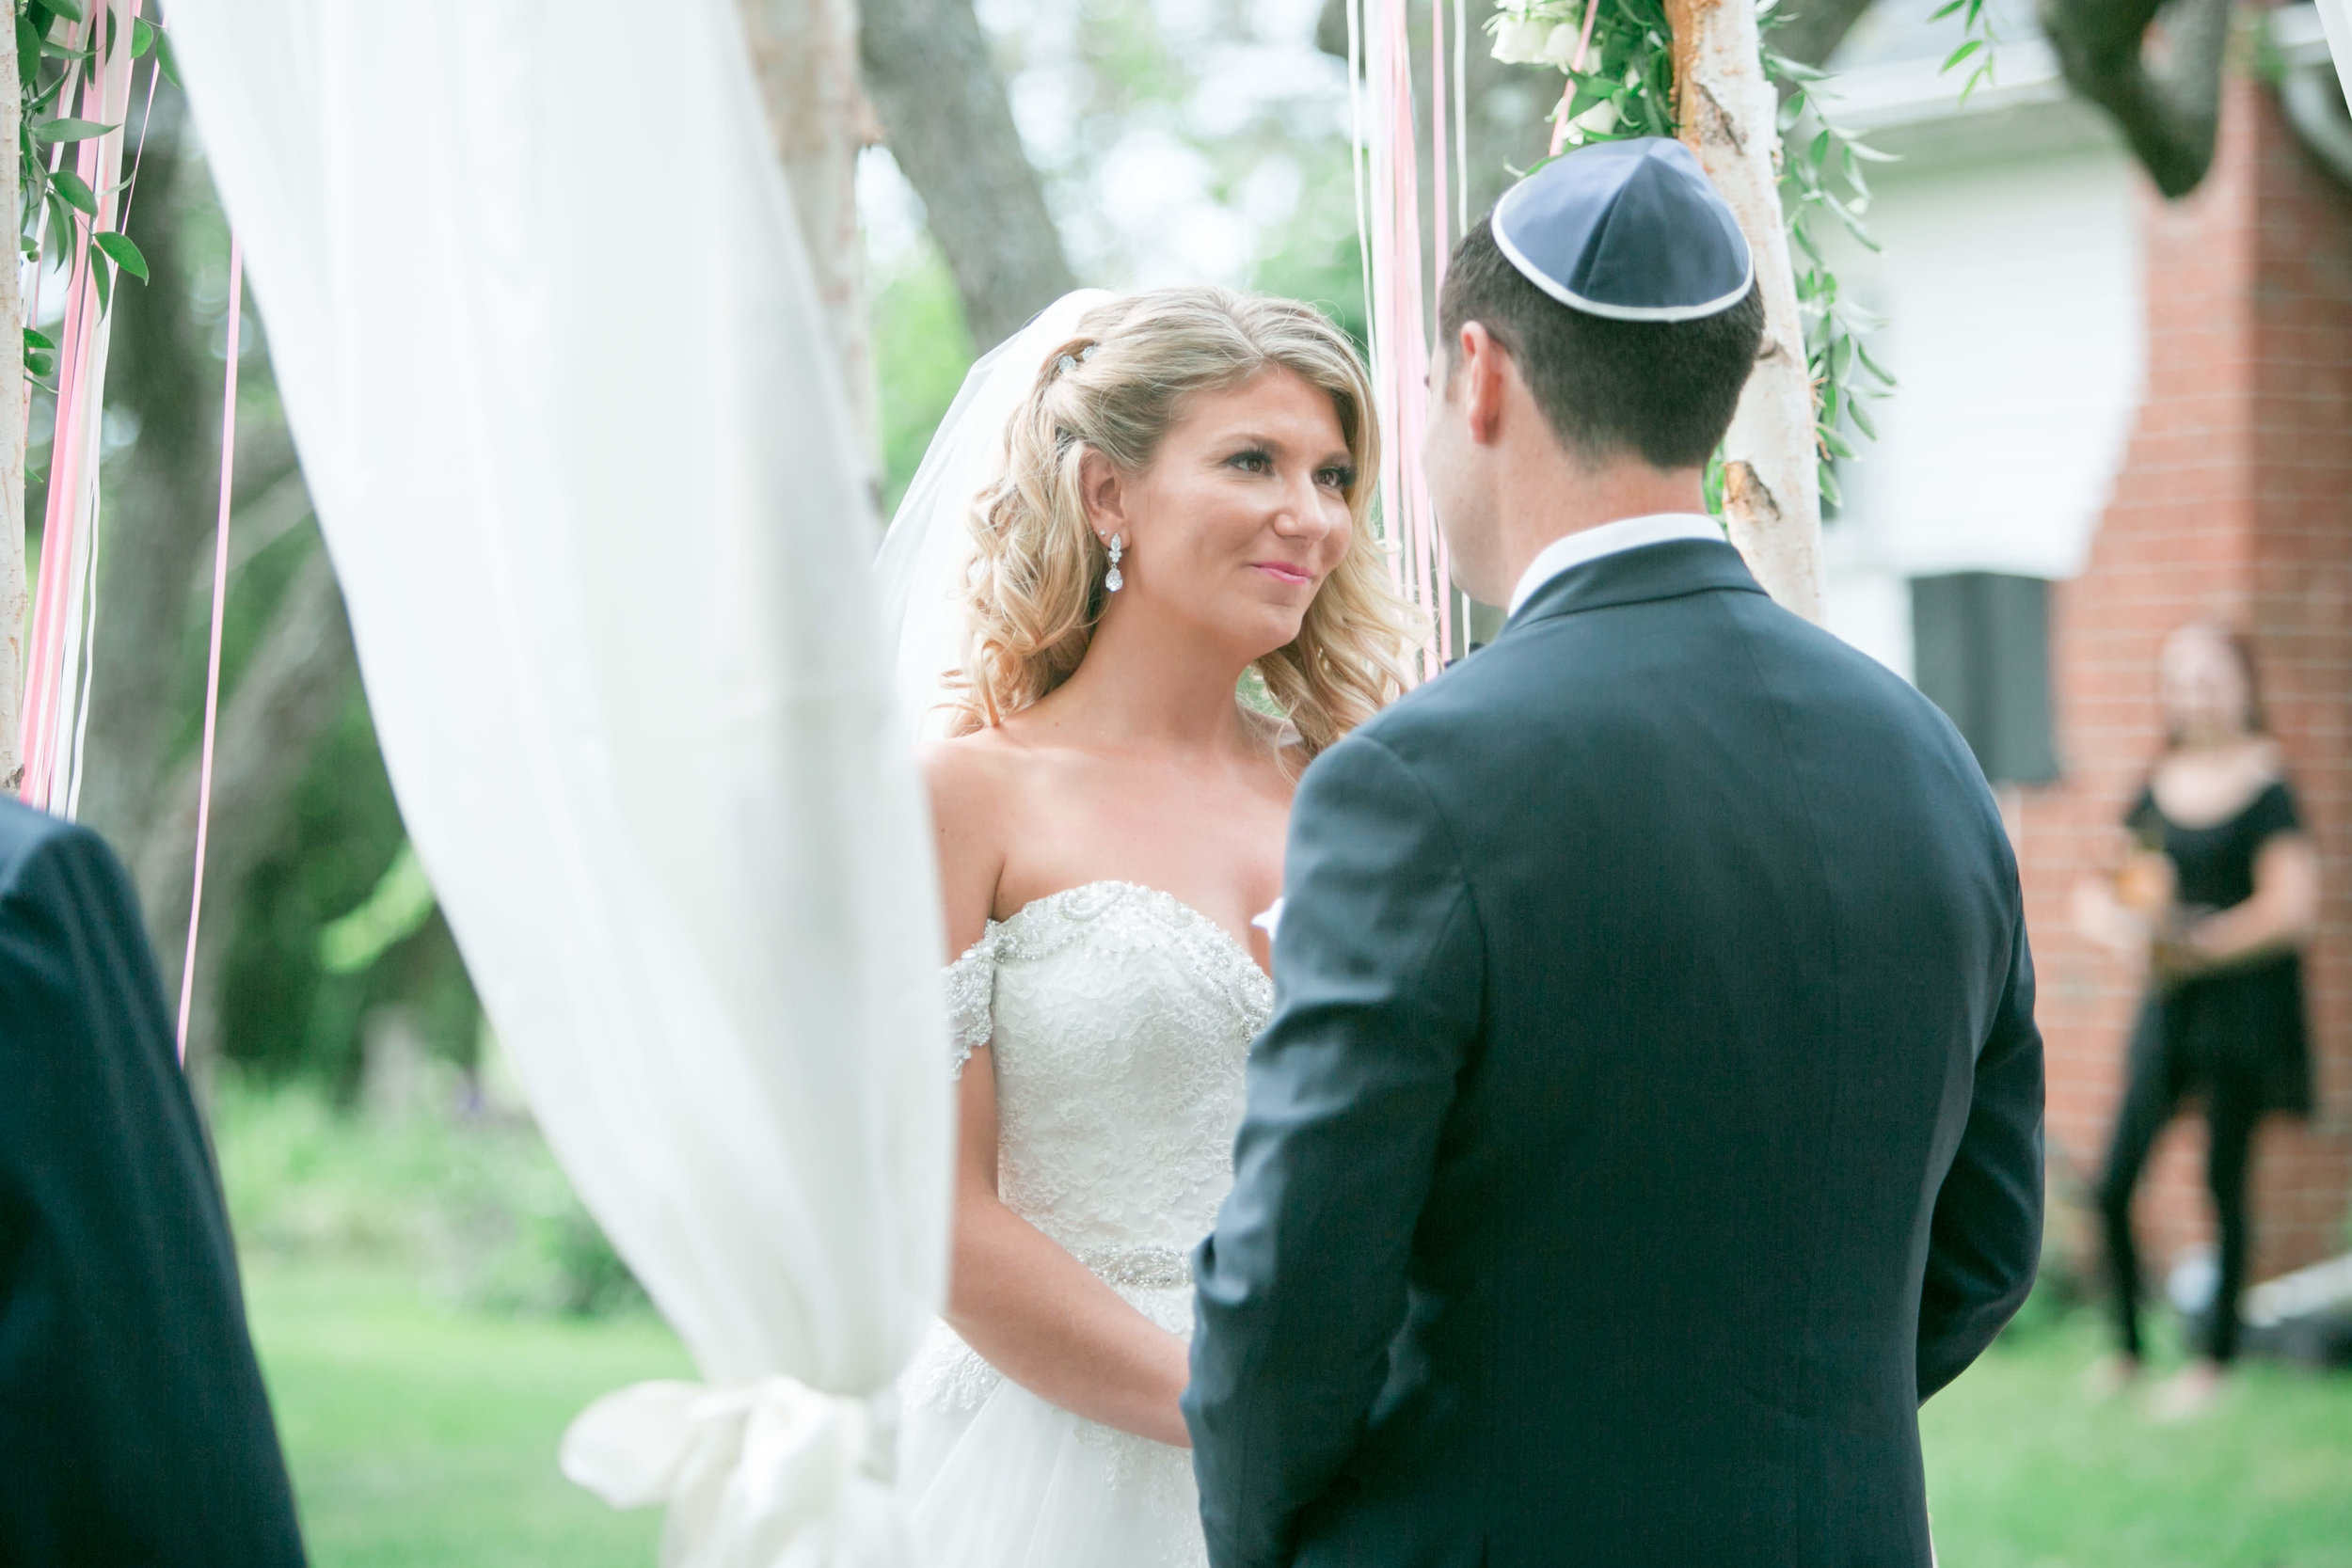 Ashley___Zac___Daniel_Ricci_Weddings___High_Res._Finals_303.jpg